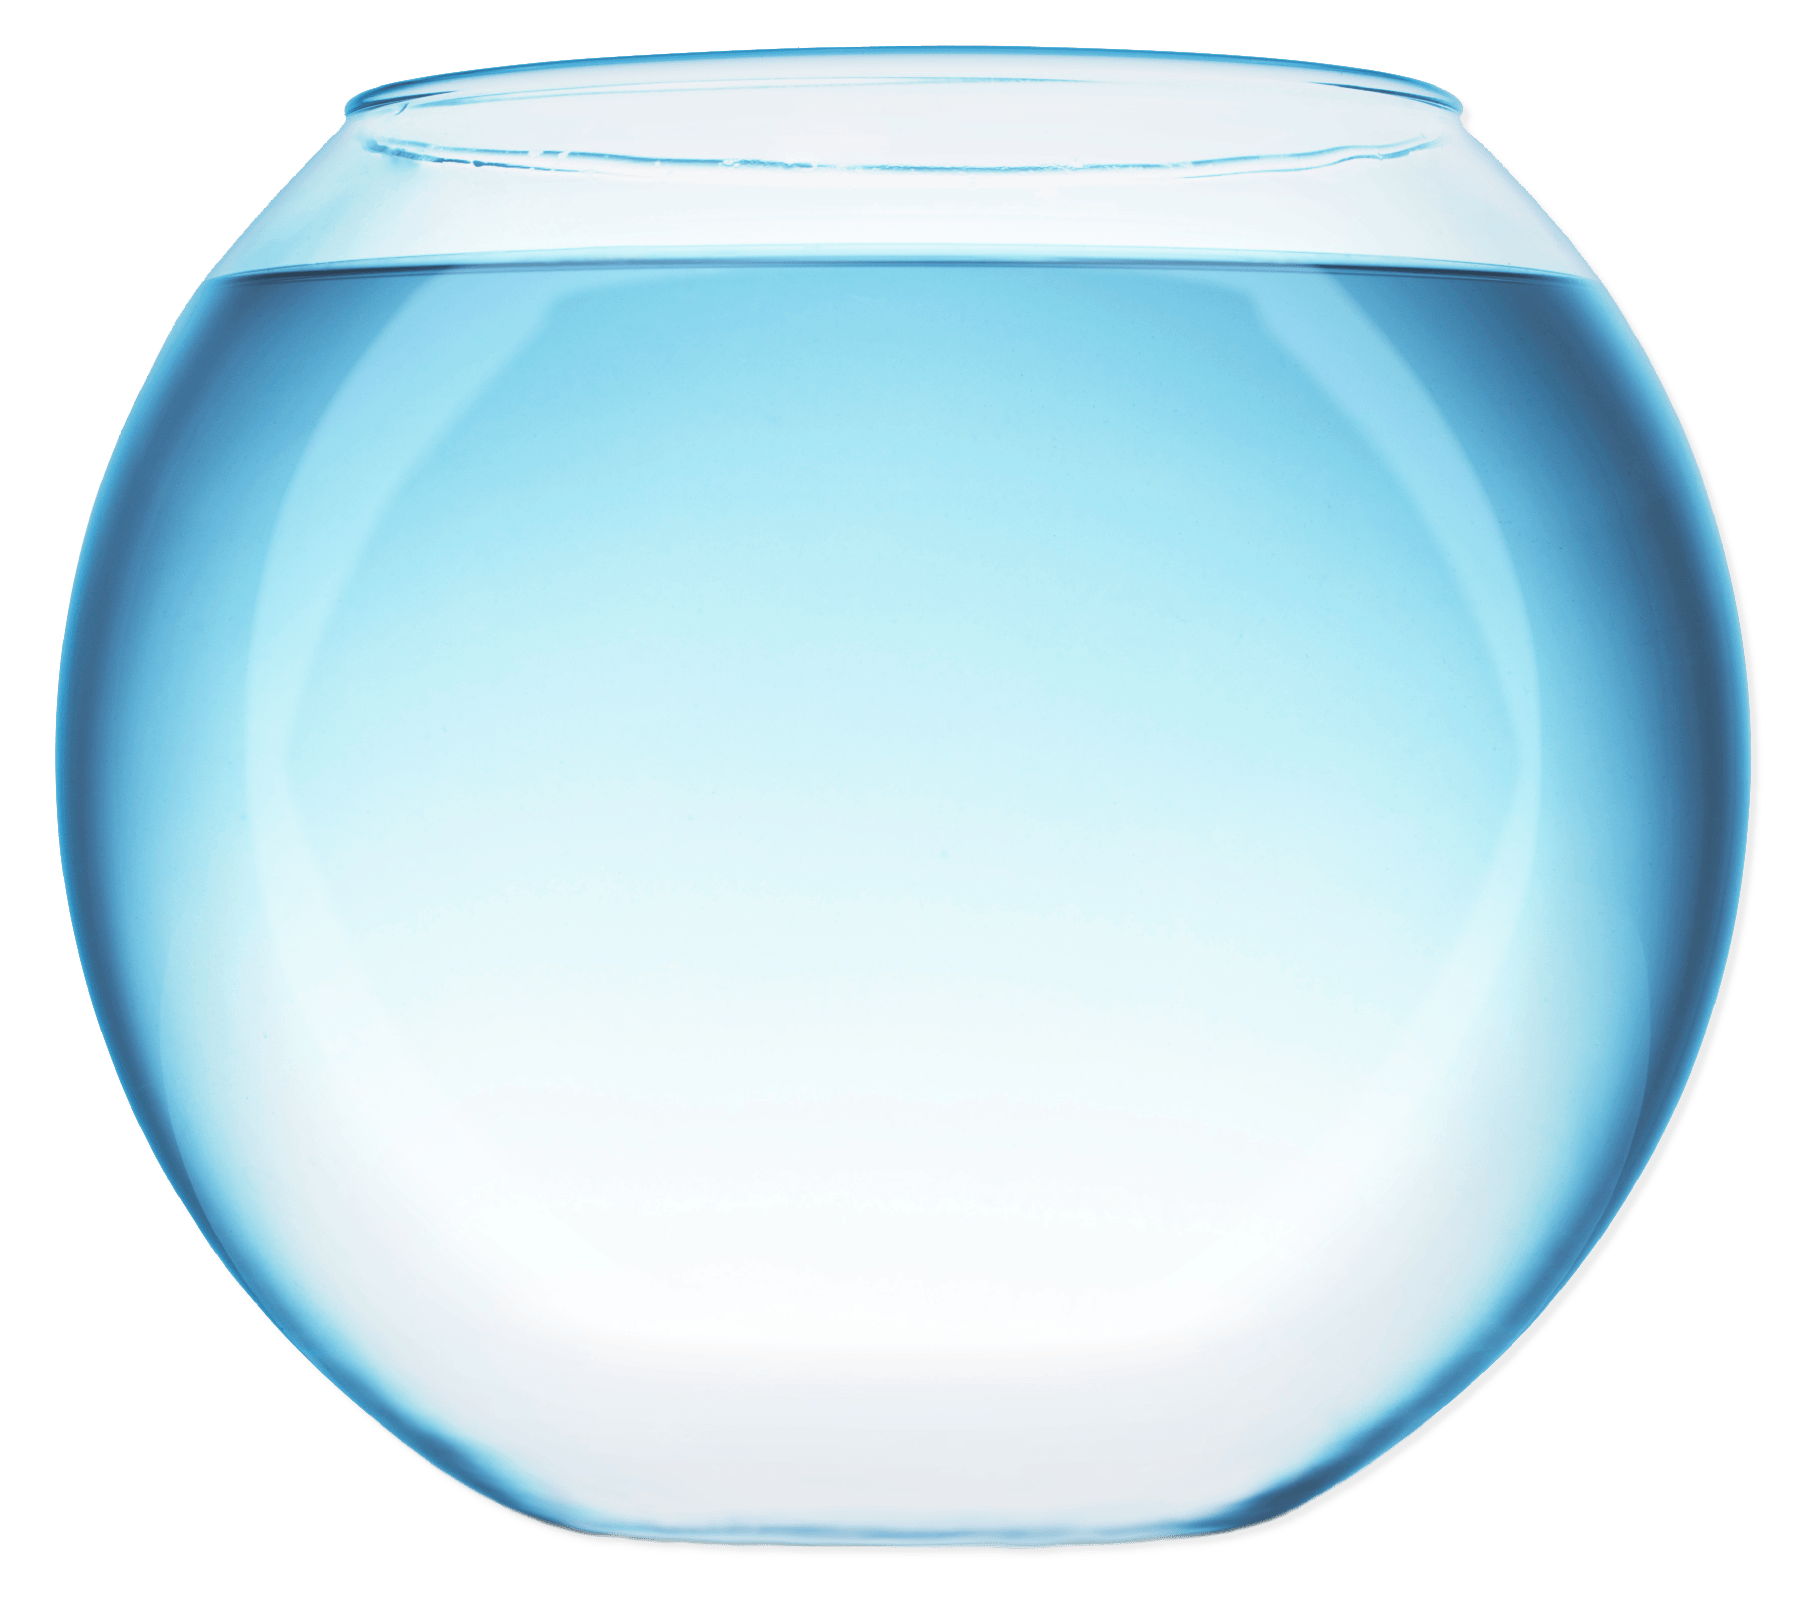 Fish Bowl With Water transparent PNG.